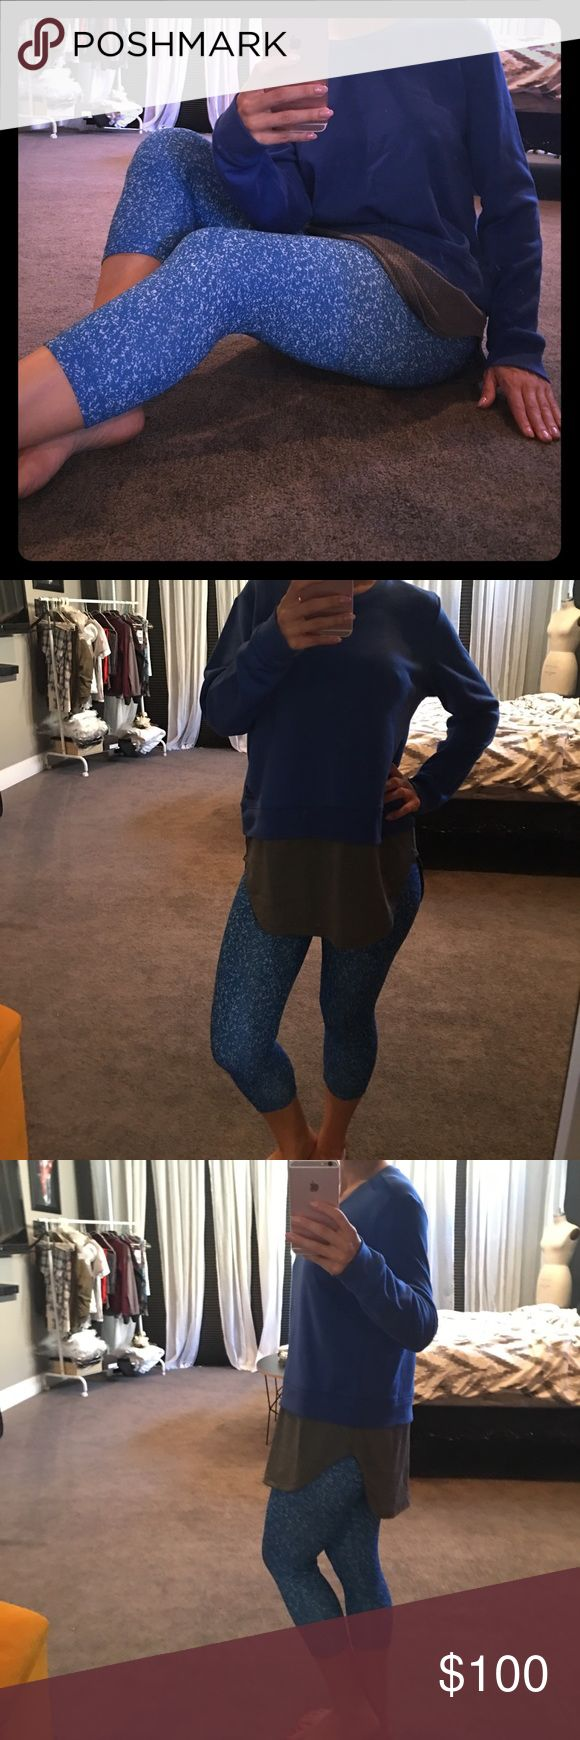 Adidas Leggings & Sweater Bundle Brand new with tags authentic Adidas outfit. Crop leggings and sweater! Very dope! Adidas Tops Sweatshirts & Hoodies